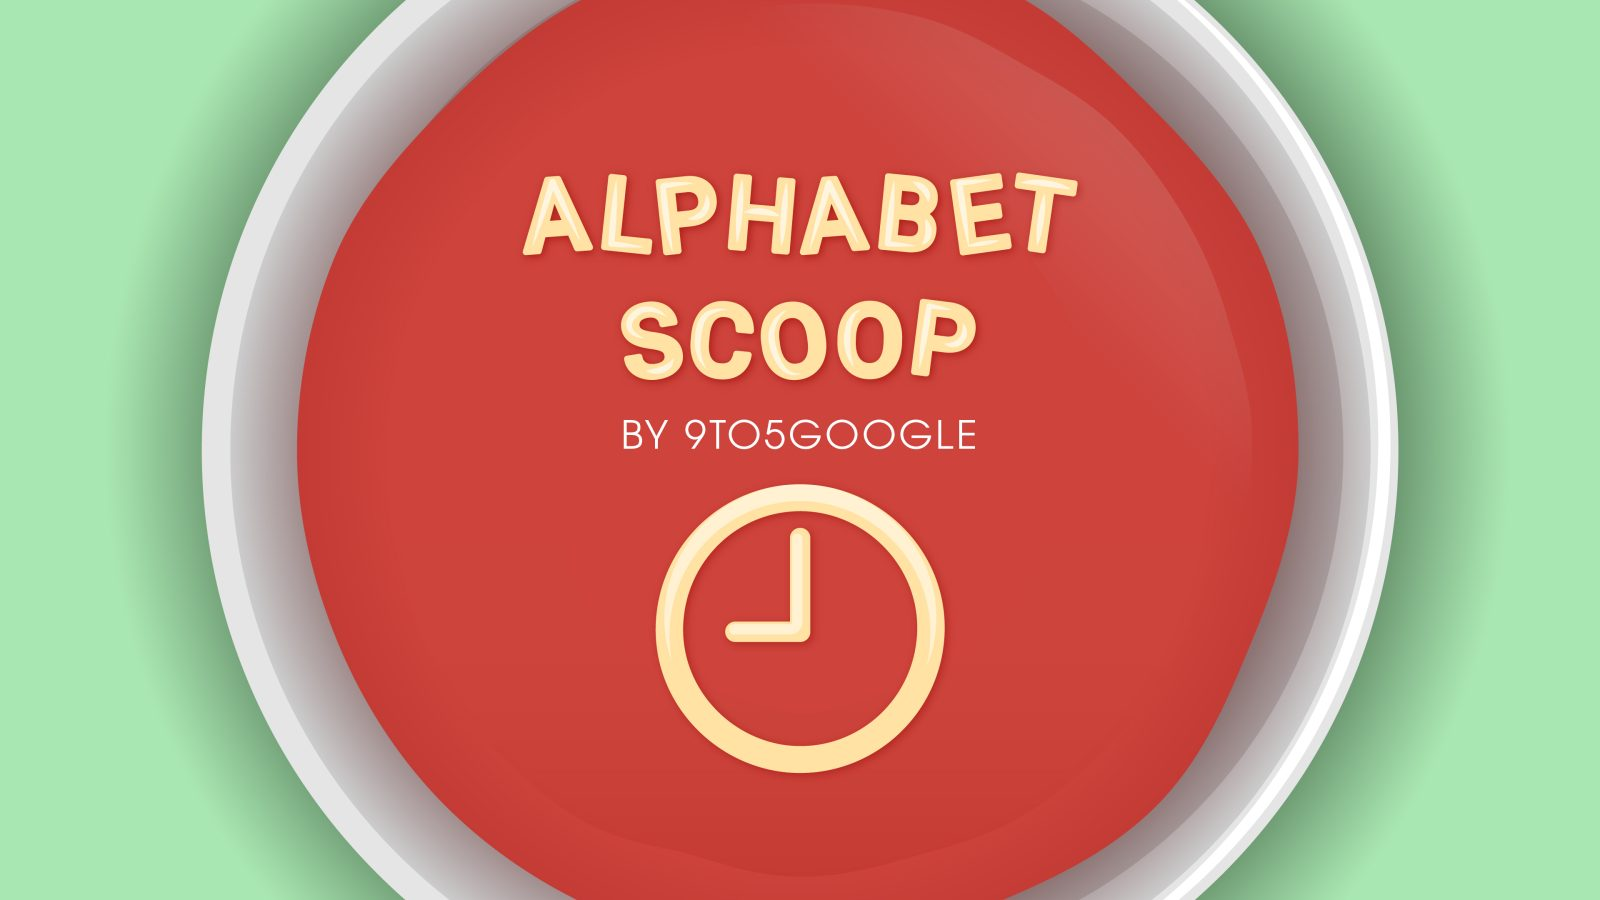 Alphabet Scoop 067: Q&A – Pixel 4, Pixel Watch, Pixelbook 2, and more